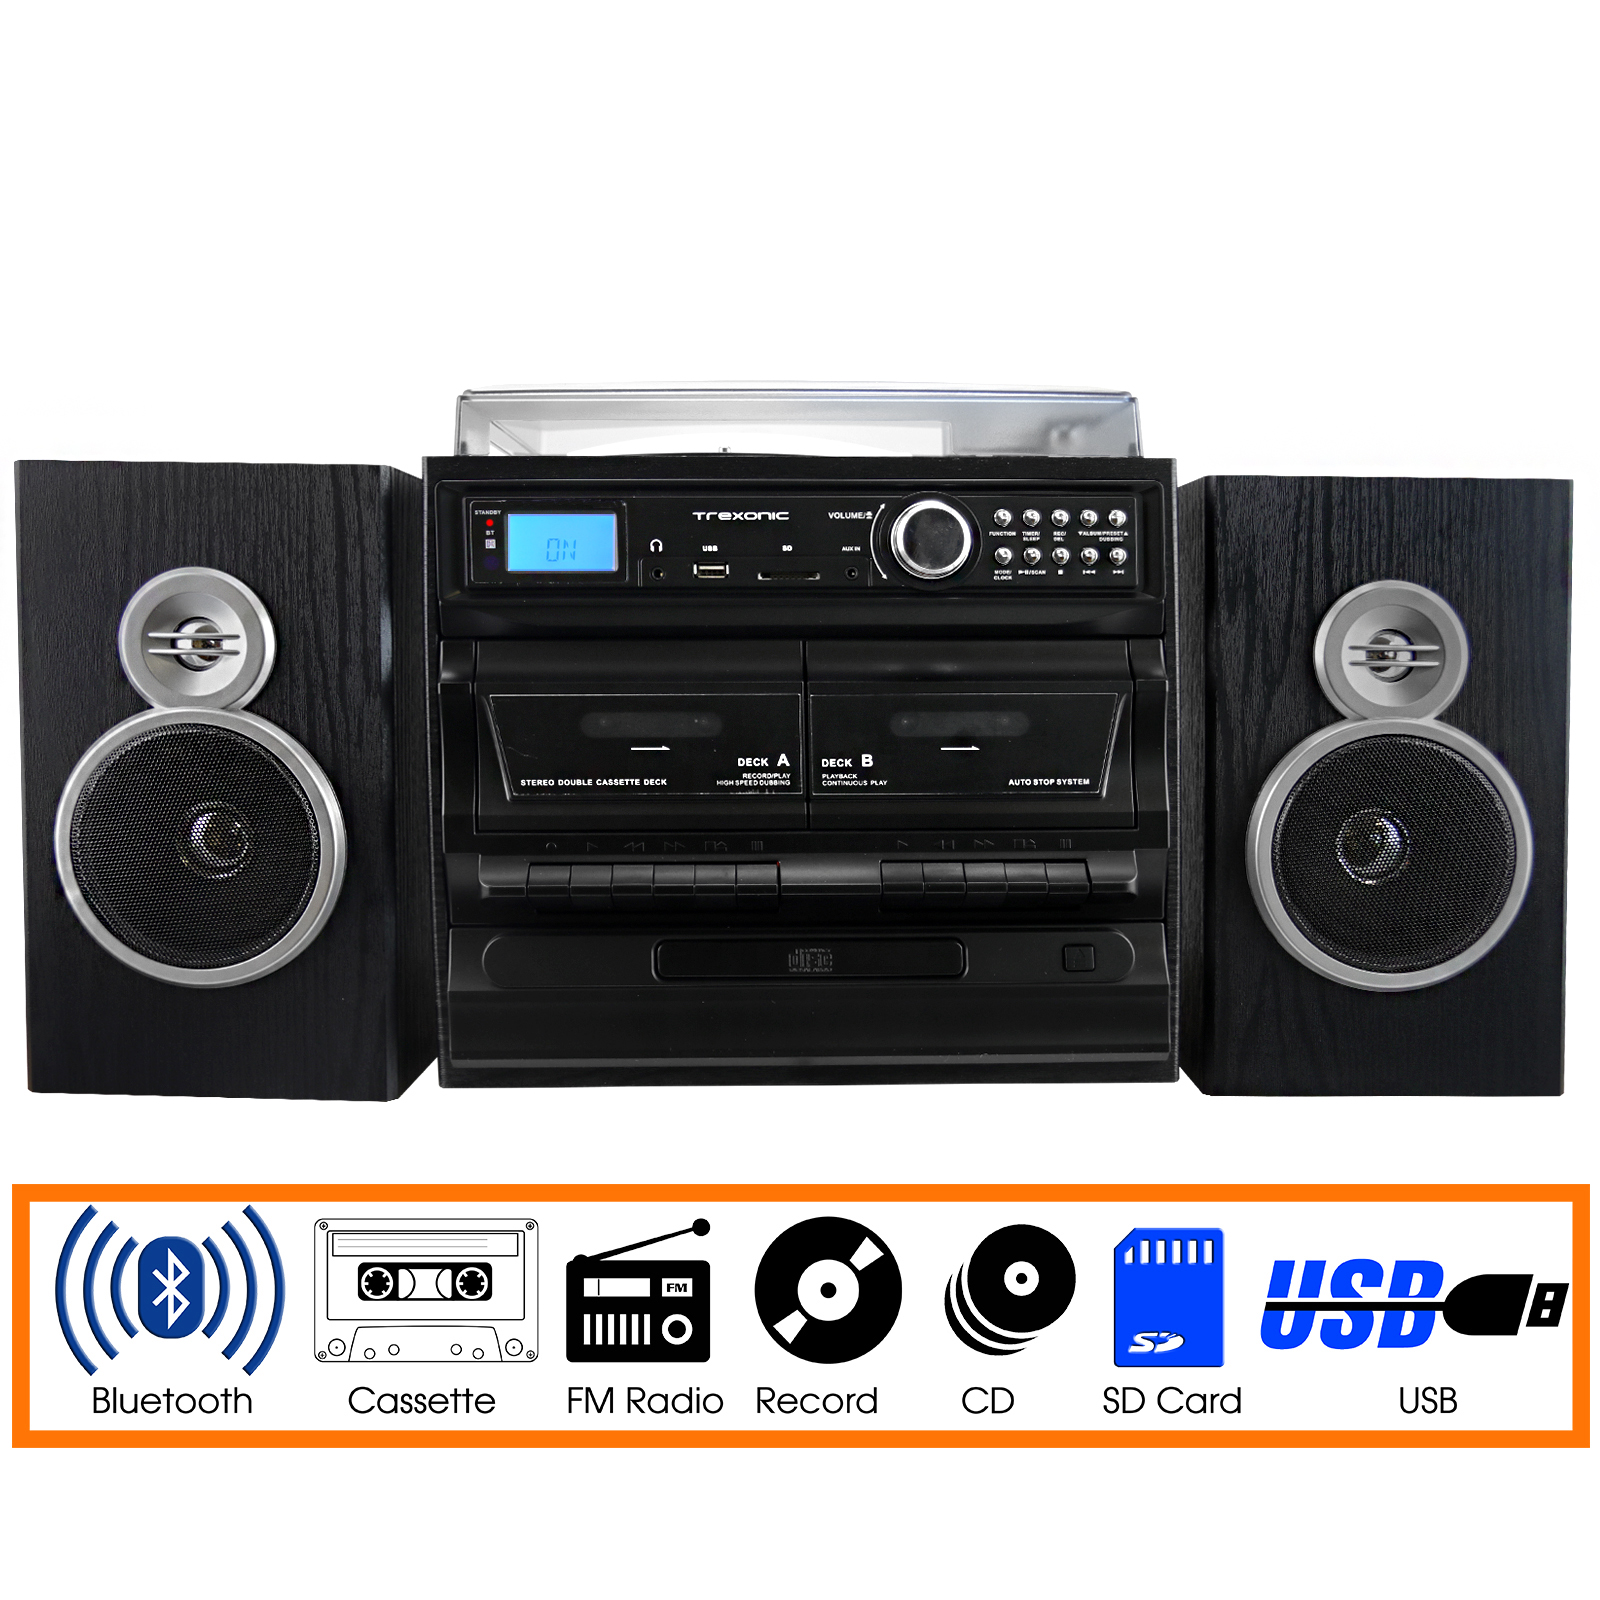 Trexonic 3-Speed Turntable With CD Player, Dual Cassette Player, BT, FM Radio & USB SD Recording and Wired... by Trexonic